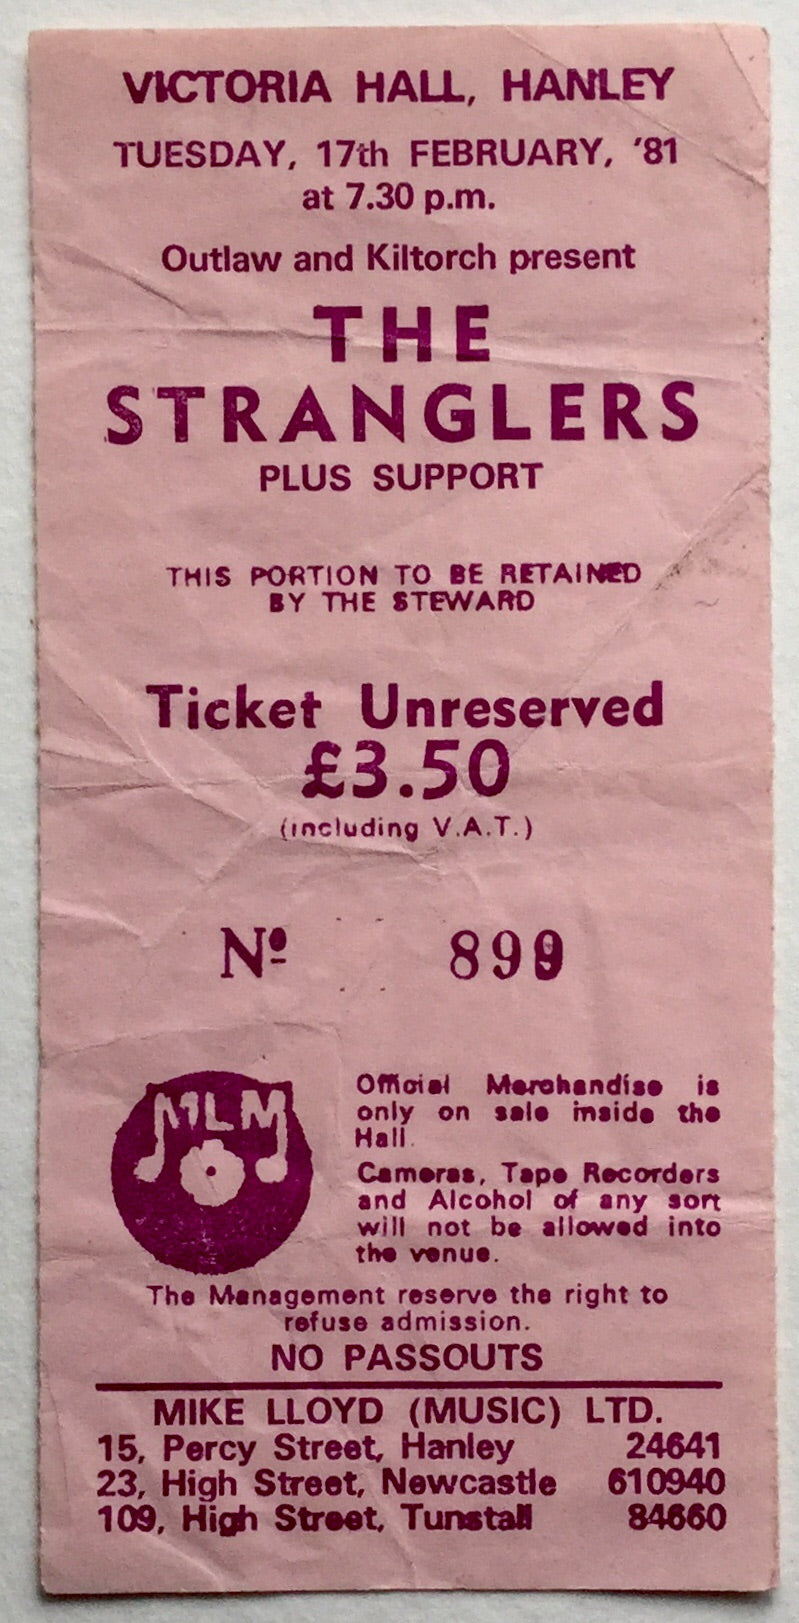 Stranglers Original Used Concert Ticket Victoria Hall Hanley 17th Feb 1981